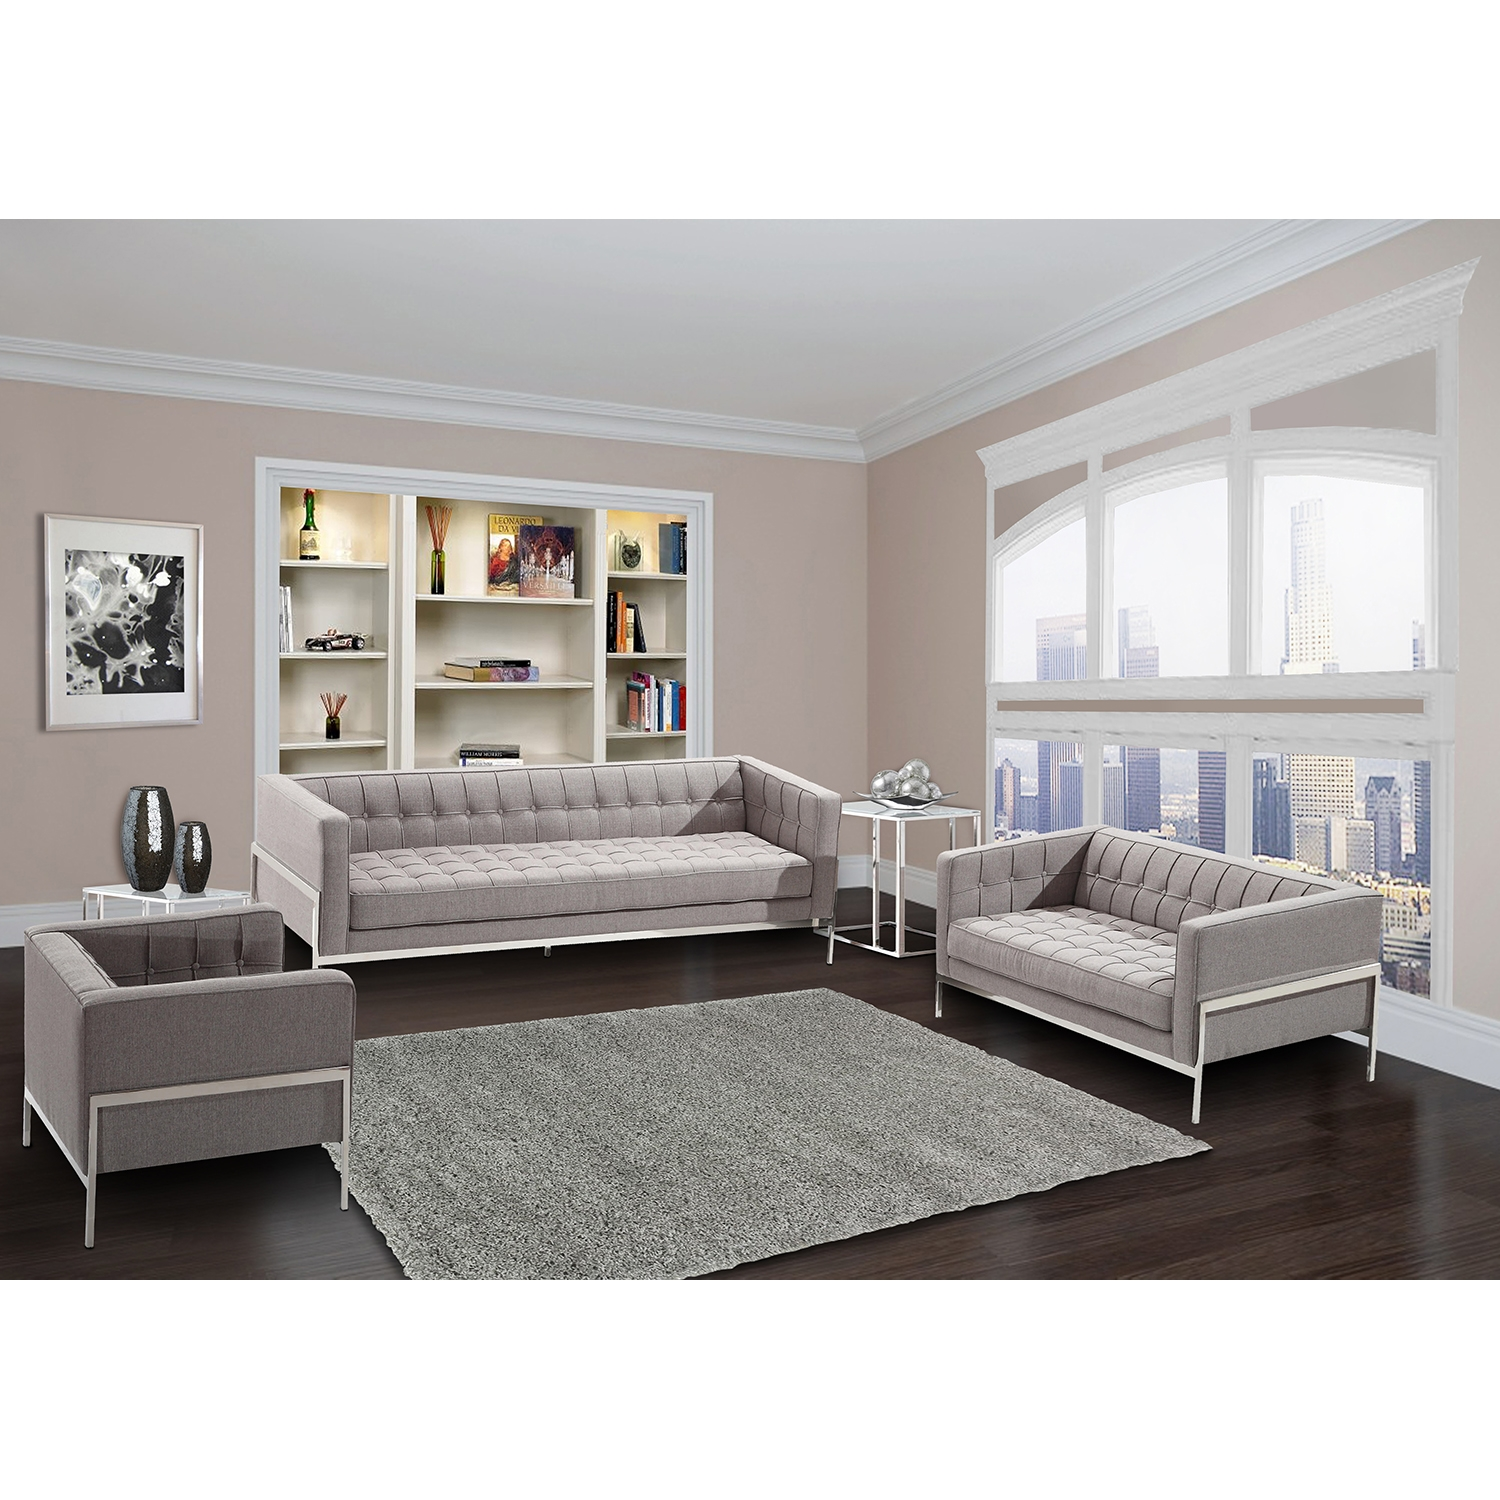 Andre Contemporary Loveseat - Gray Tweed - AL-LCAN2GR